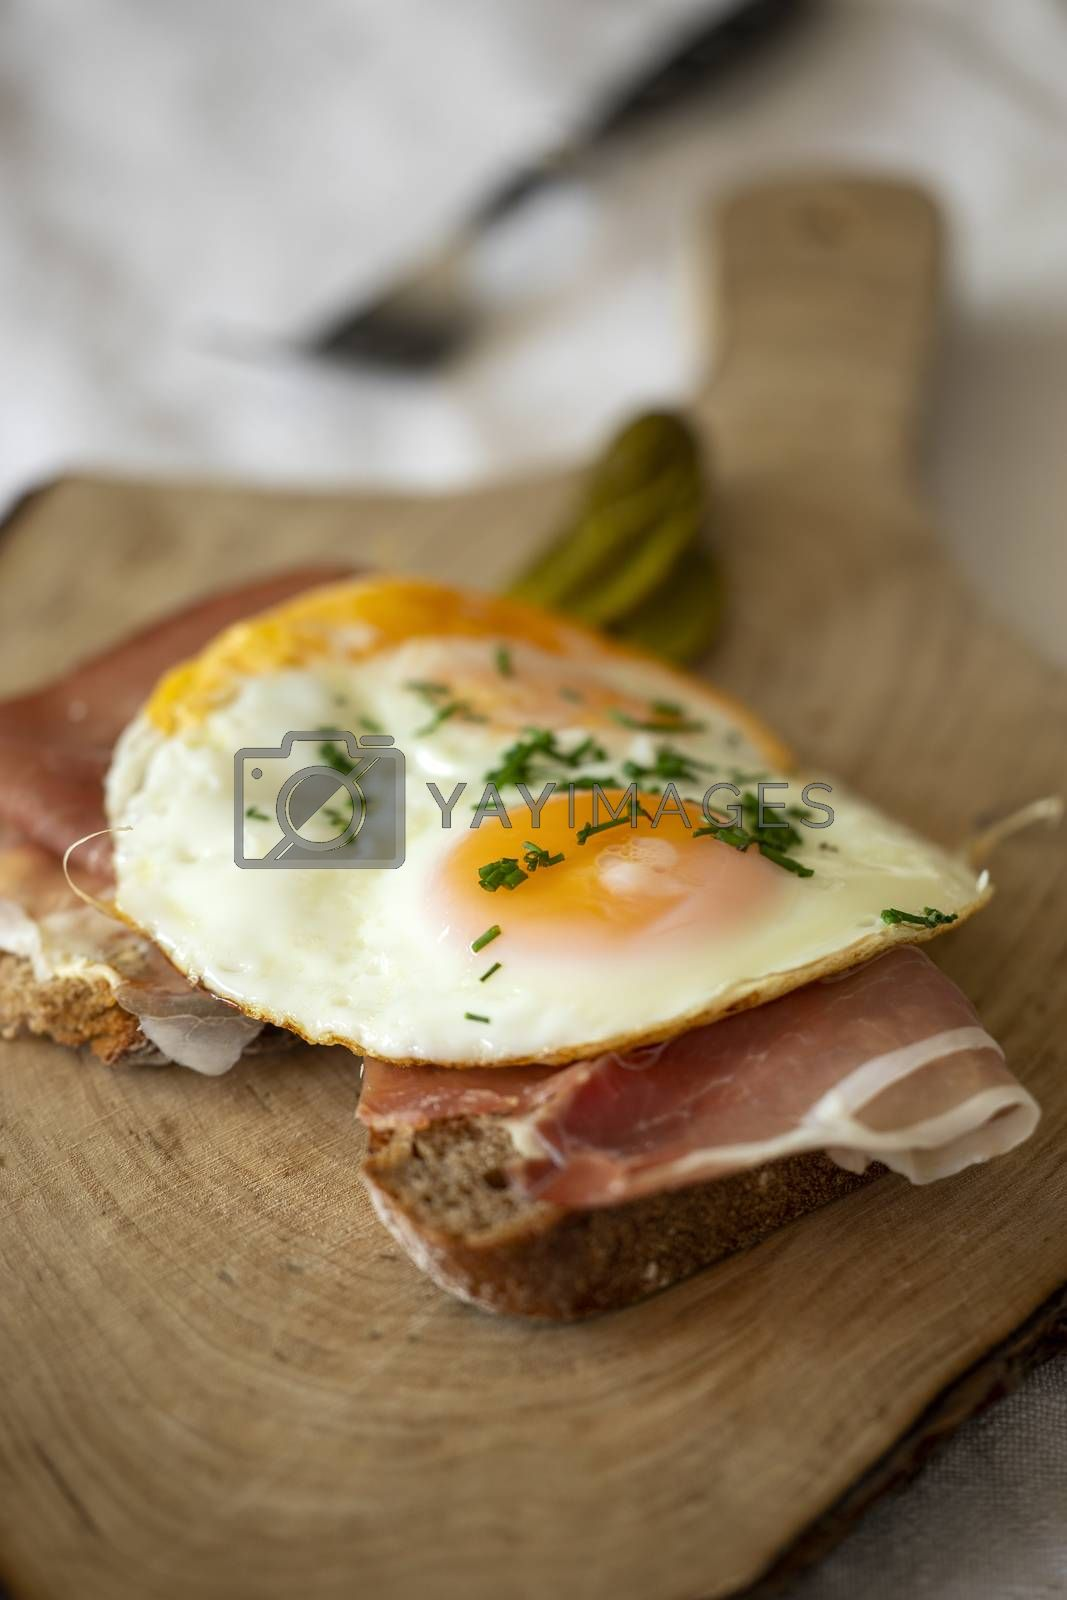 eggs sunny side up on rye bread